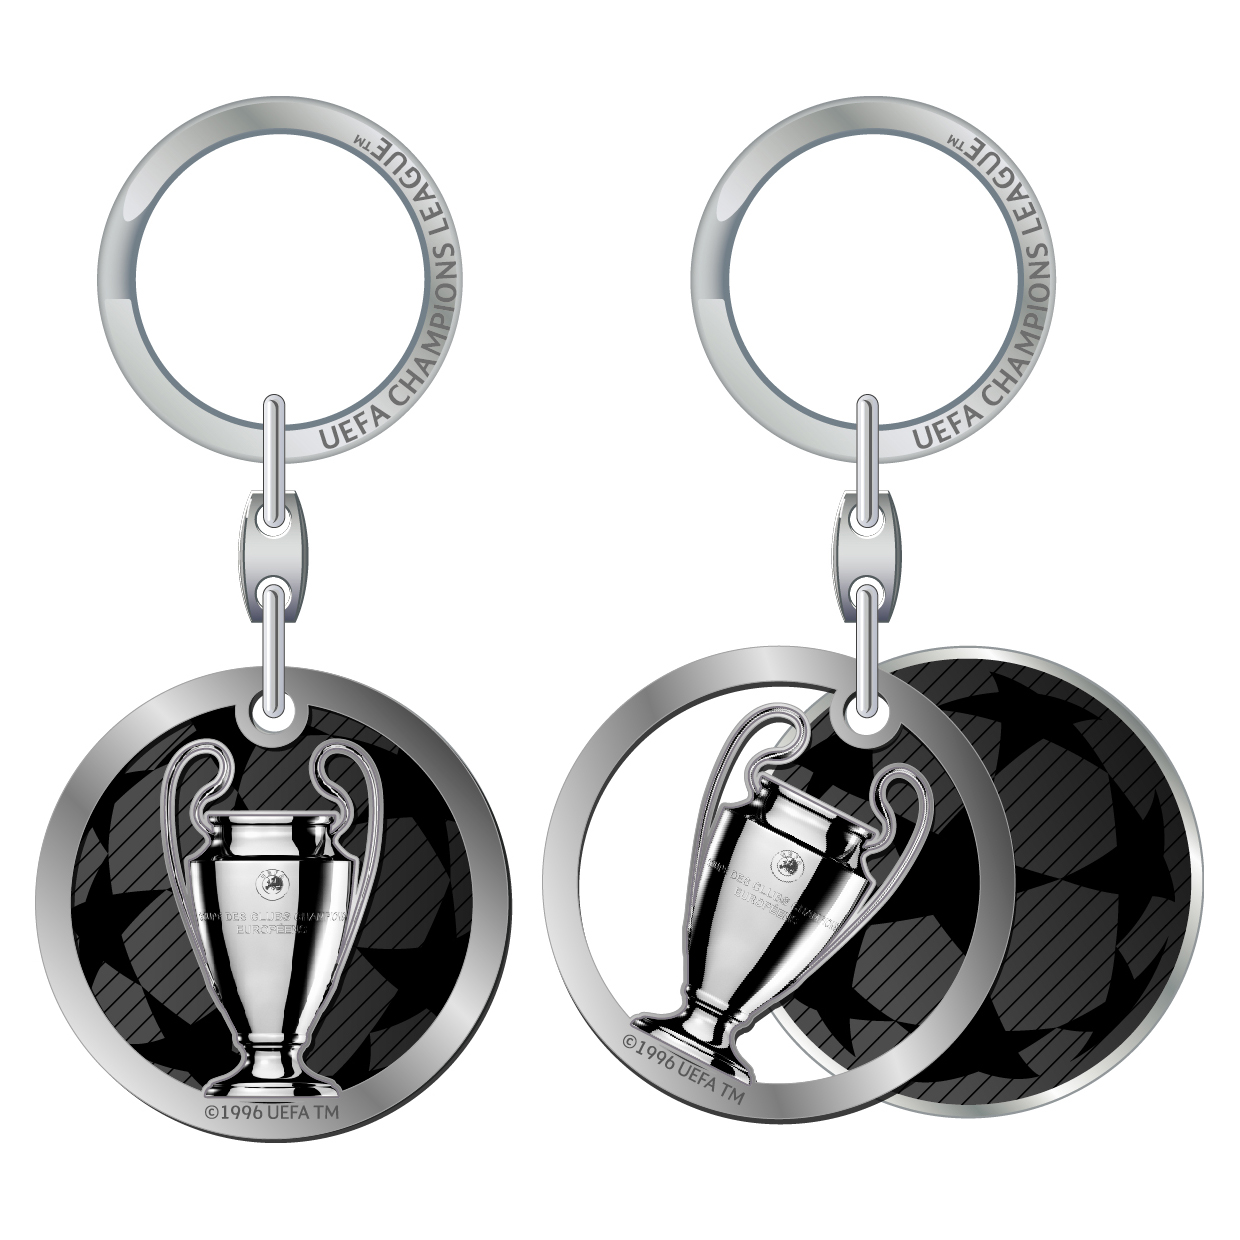 UEFA Champions League Trophy 2D Acrylic Key Ring